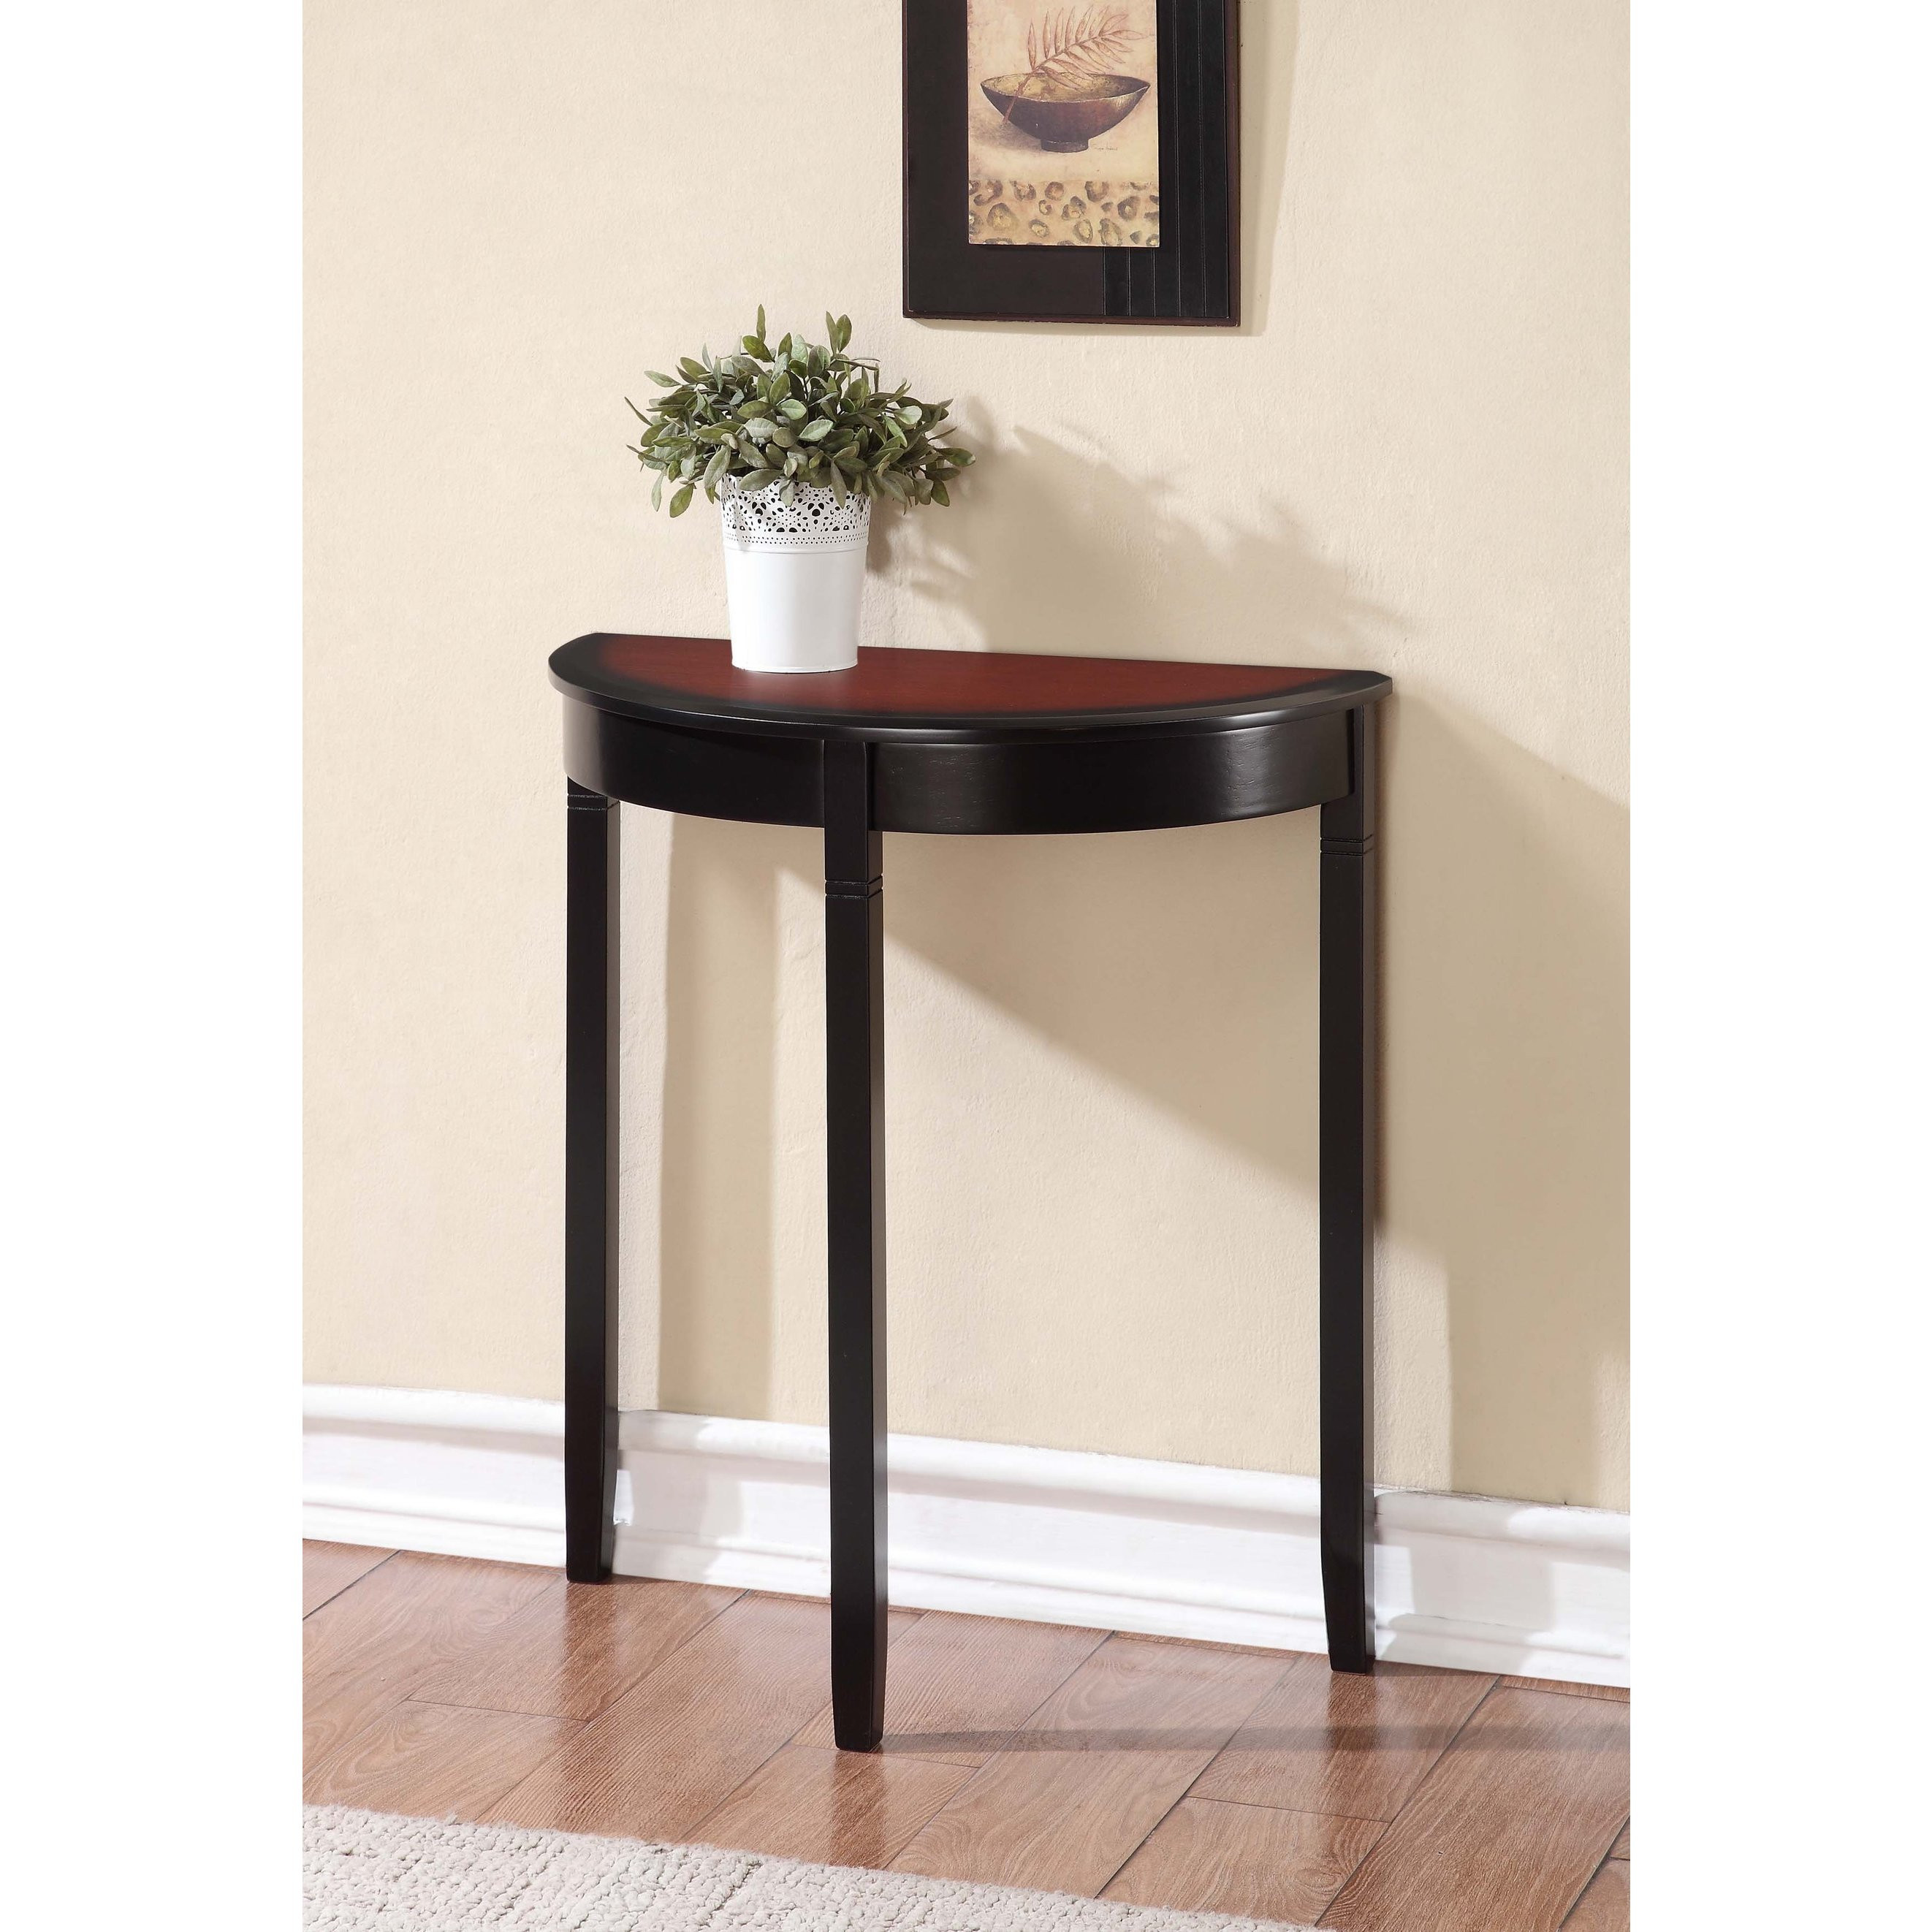 half moon kitchen rugs elegant round accent table black designs recycled wood furniture diy legs mortar and pestle target mirrored bedside ethan allen lighting apothecary cabinet